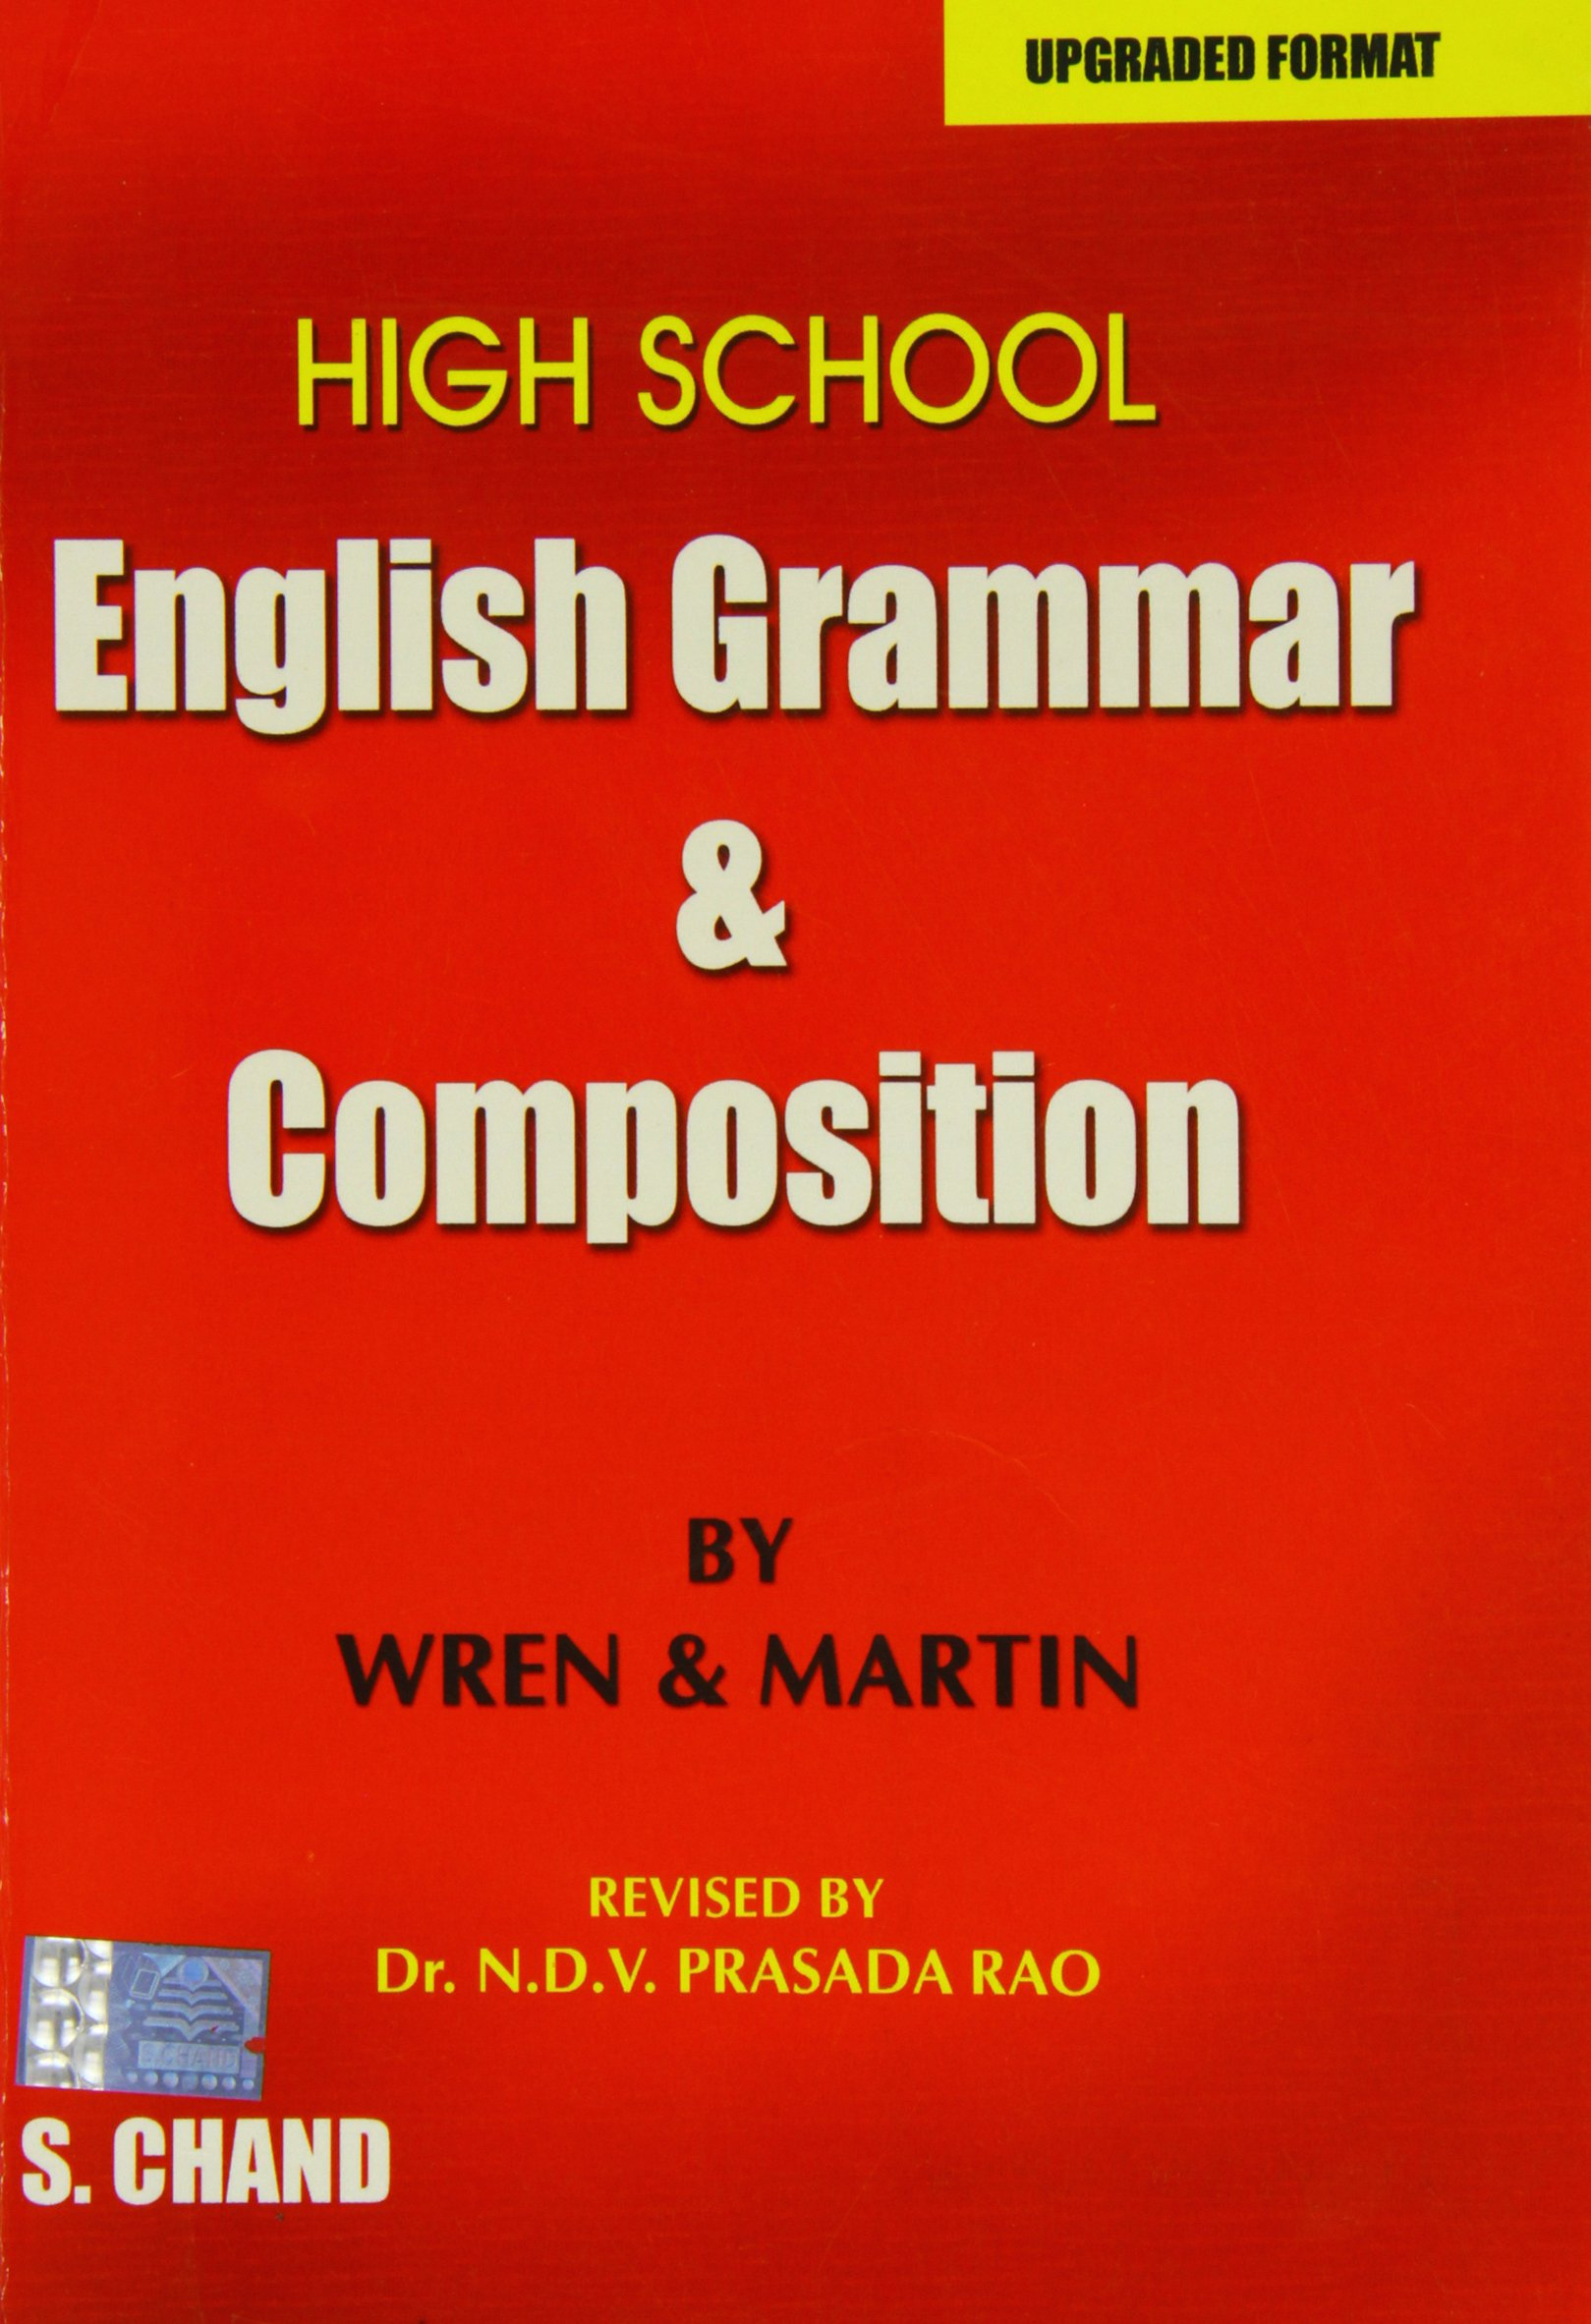 Buy high school english grammar and composition old edition book buy high school english grammar and composition old edition book online at low prices in india high school english grammar and composition old edition fandeluxe Gallery